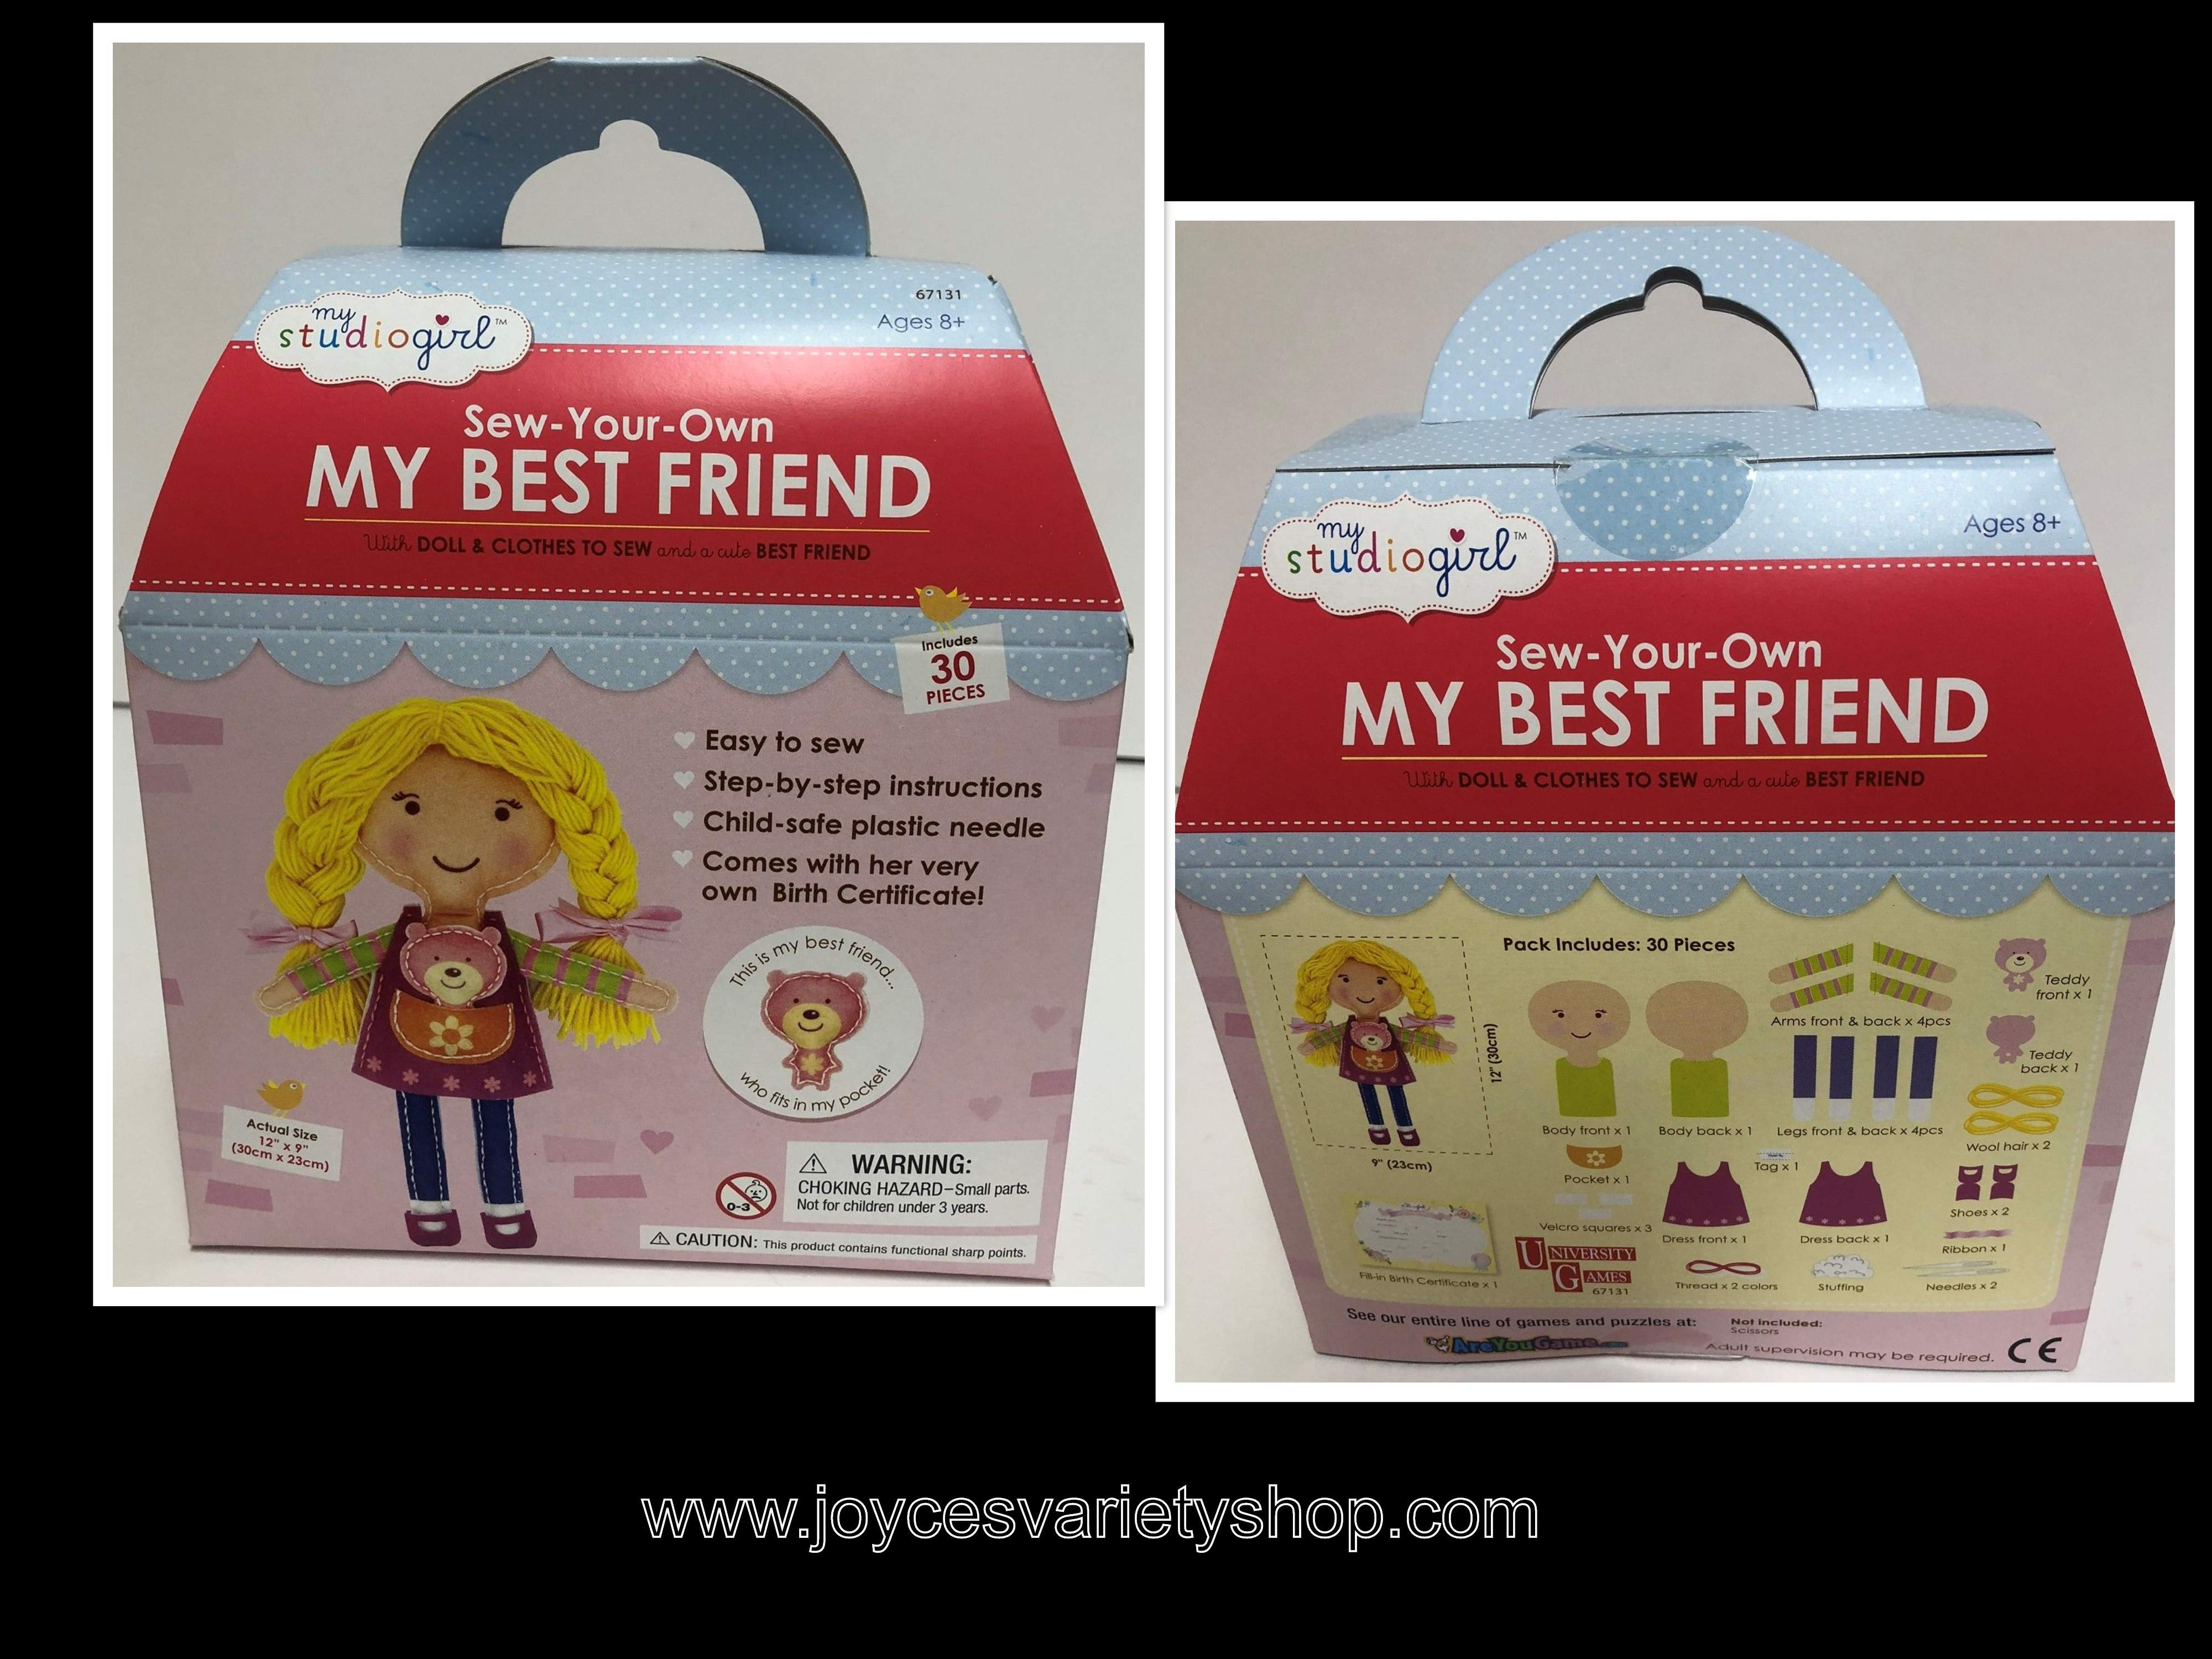 Sew Your Own Best Friend My Studio Girl Easy Sew Kit Instructions 30 Pcs.